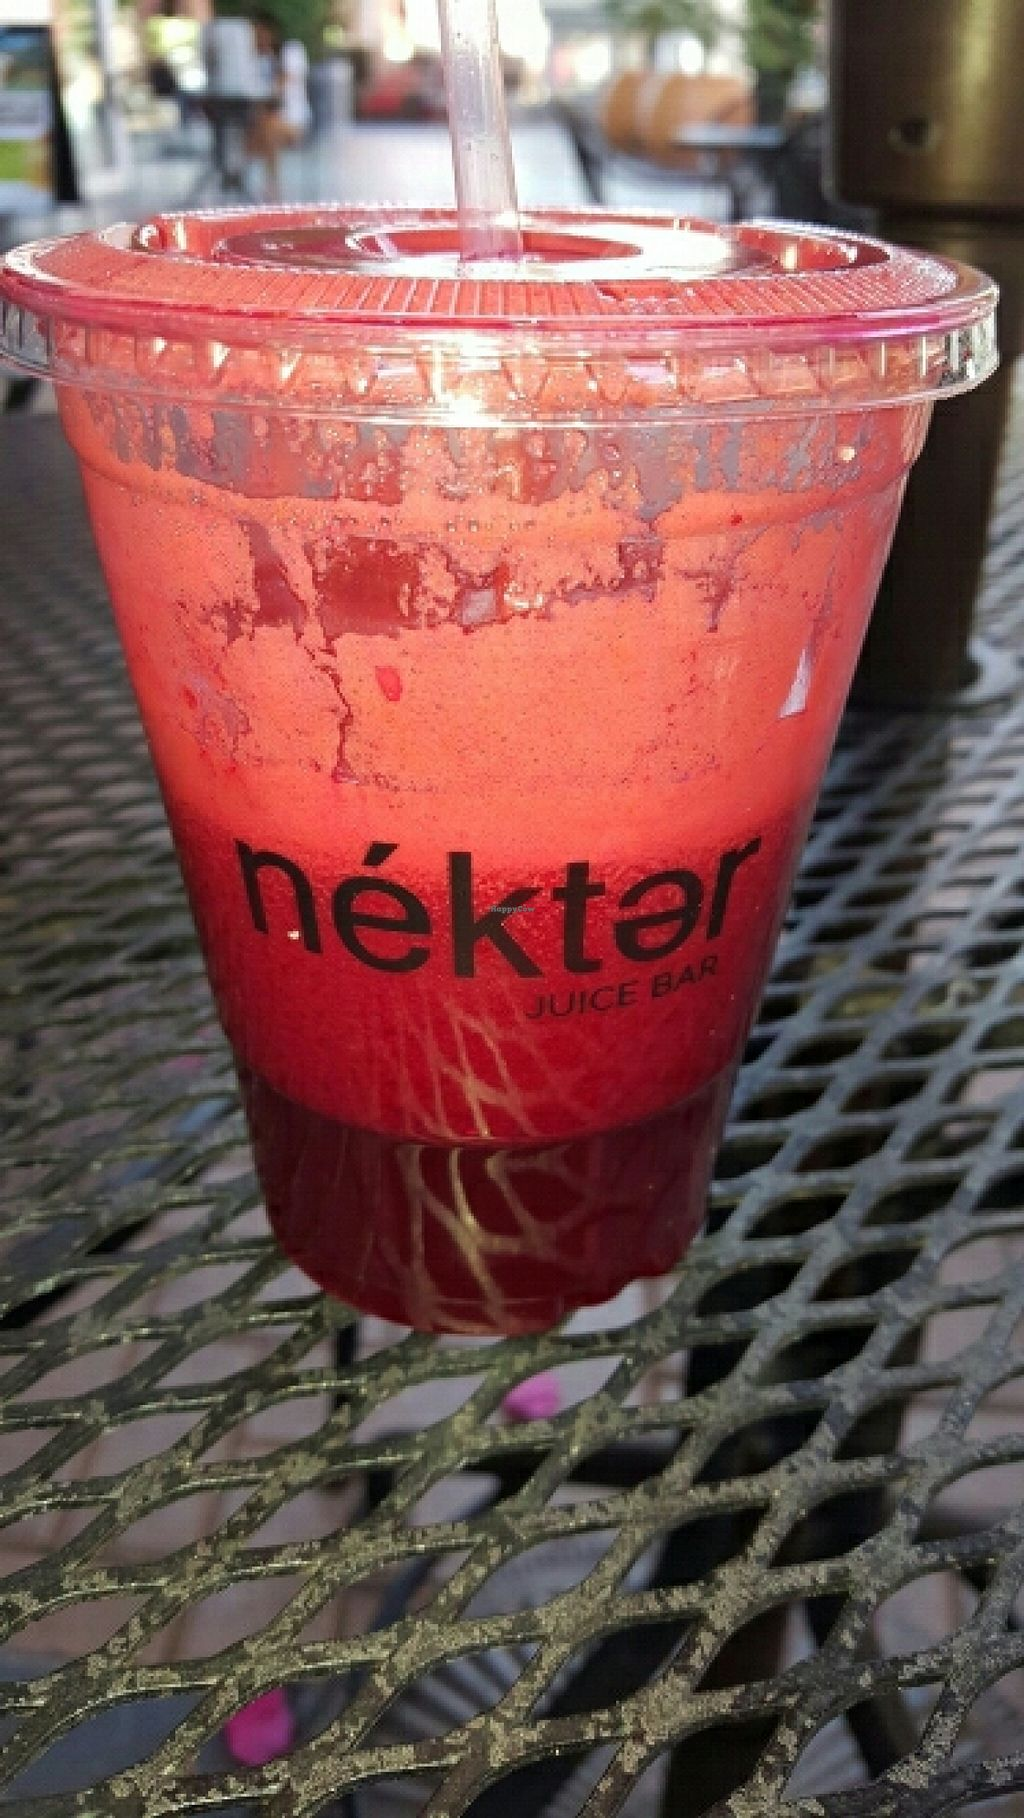 """Photo of Nekter Juice Bar  by <a href=""""/members/profile/VegManda"""">VegManda</a> <br/>Beet Juice  <br/> March 23, 2016  - <a href='/contact/abuse/image/71261/141083'>Report</a>"""